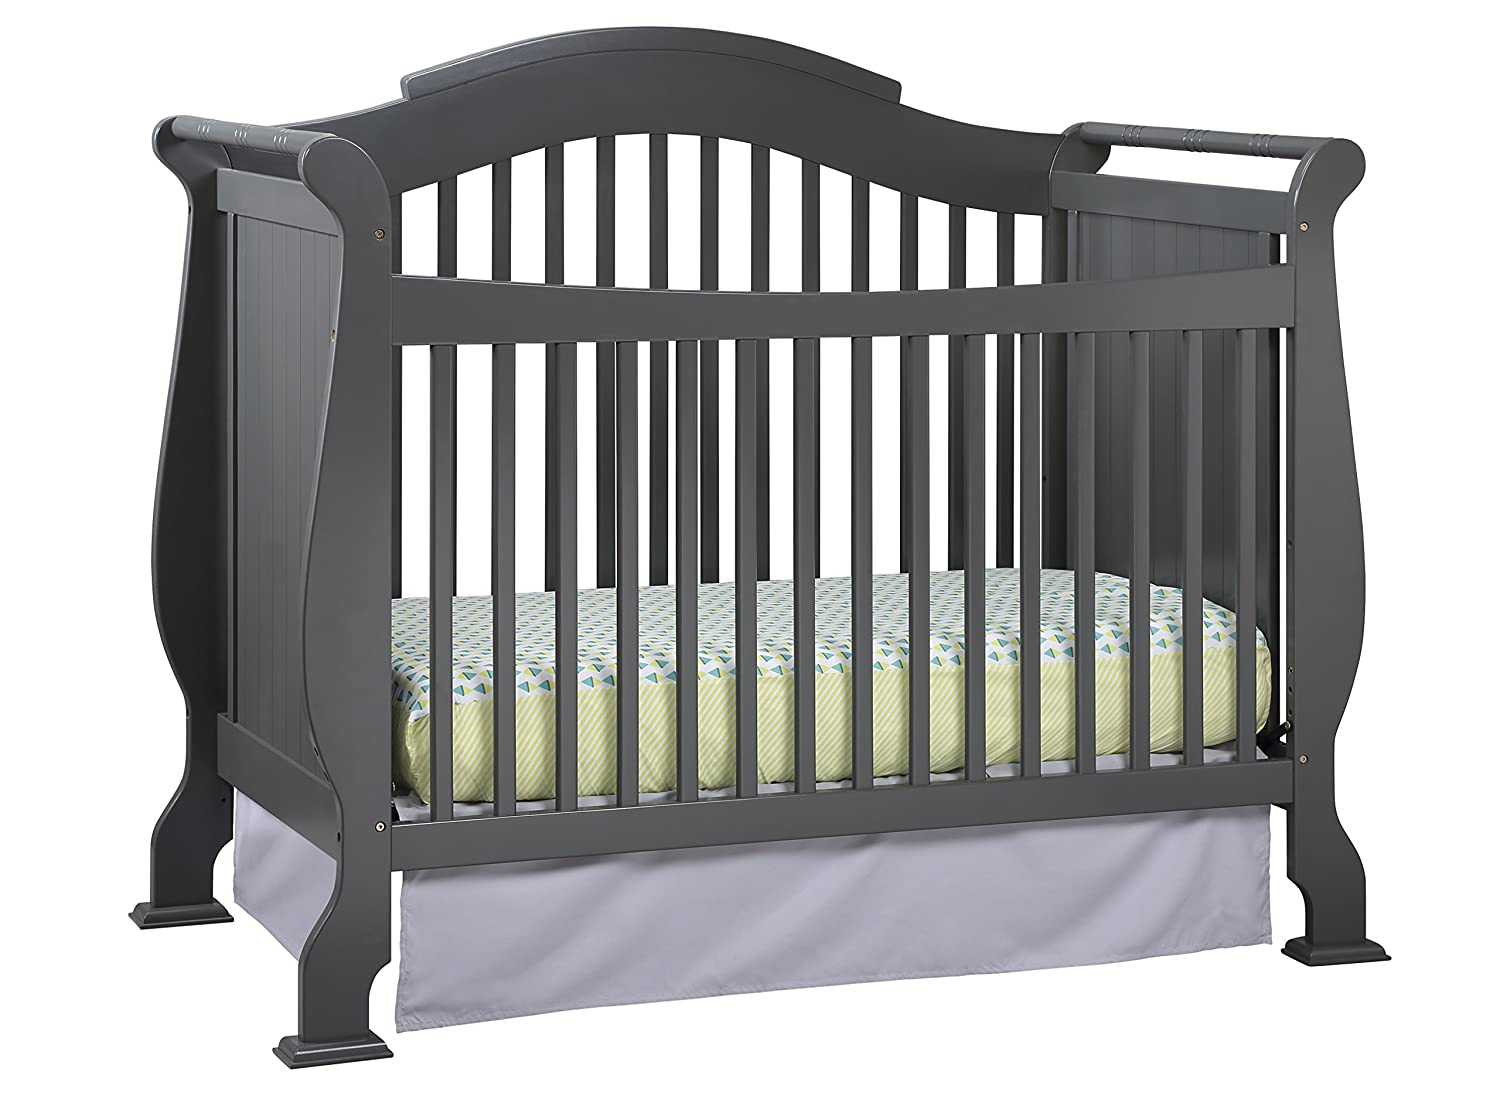 hayneedle and crib size calabria s n sorelle full storkcraft tuscany of with amazoncom changing elite cribs bed princeton convertible in set baby changer table